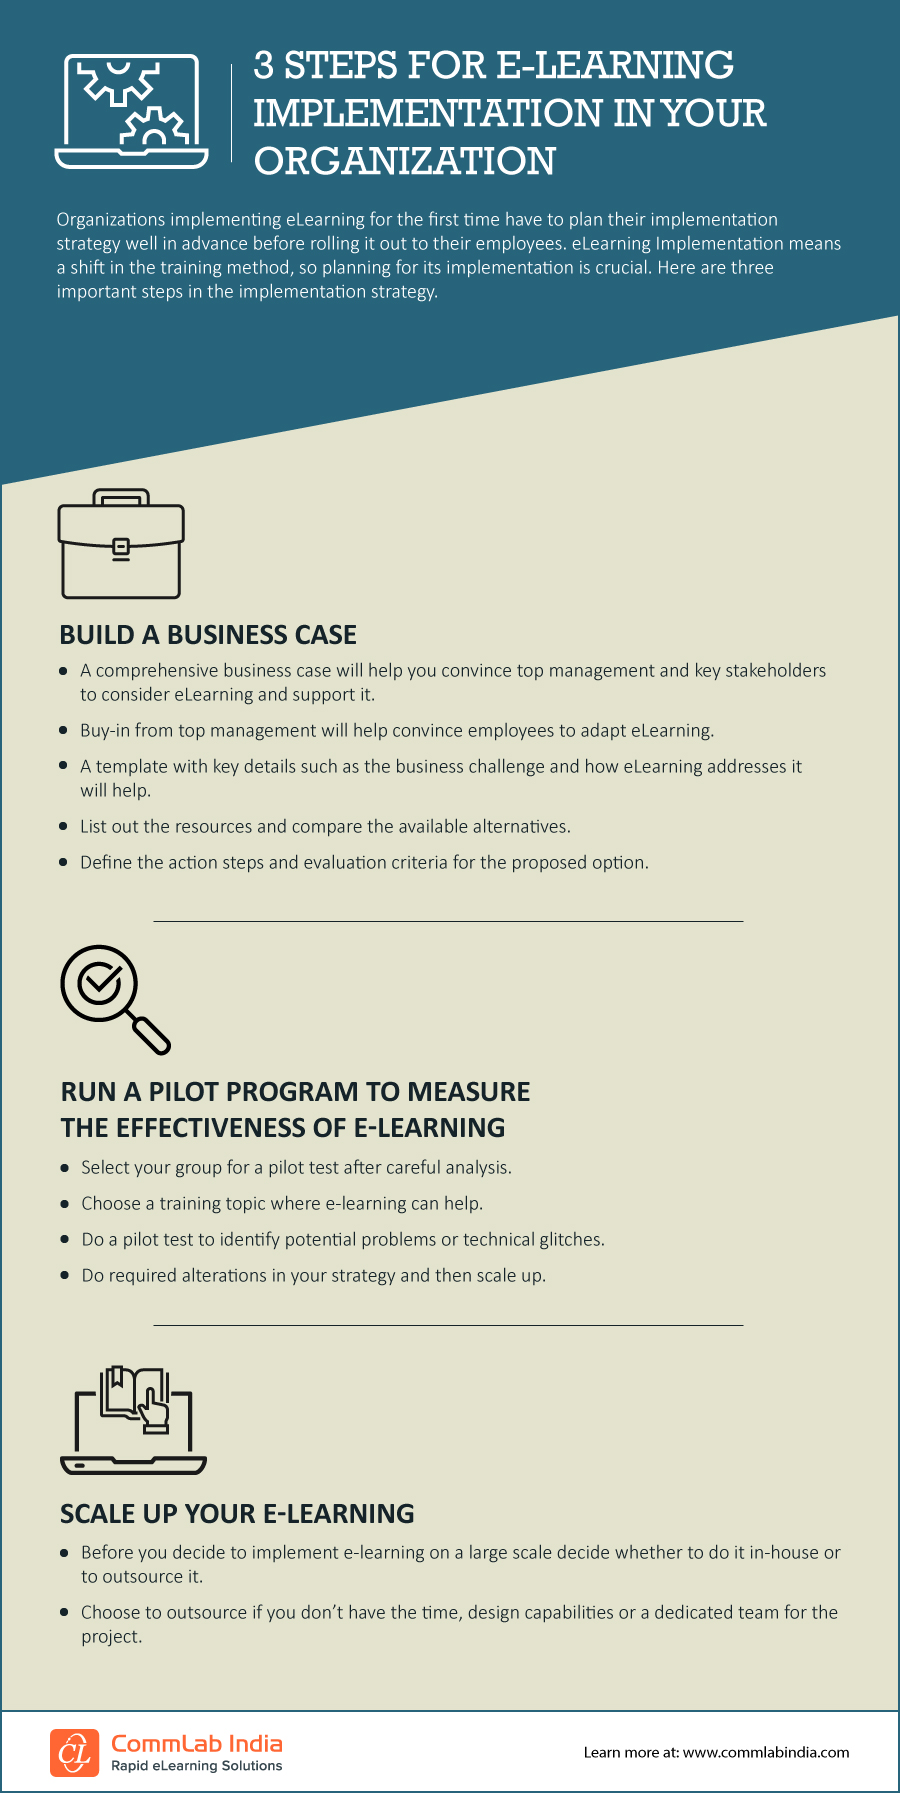 3 Steps for E-learning Implementation in Your Organization [Infographic]